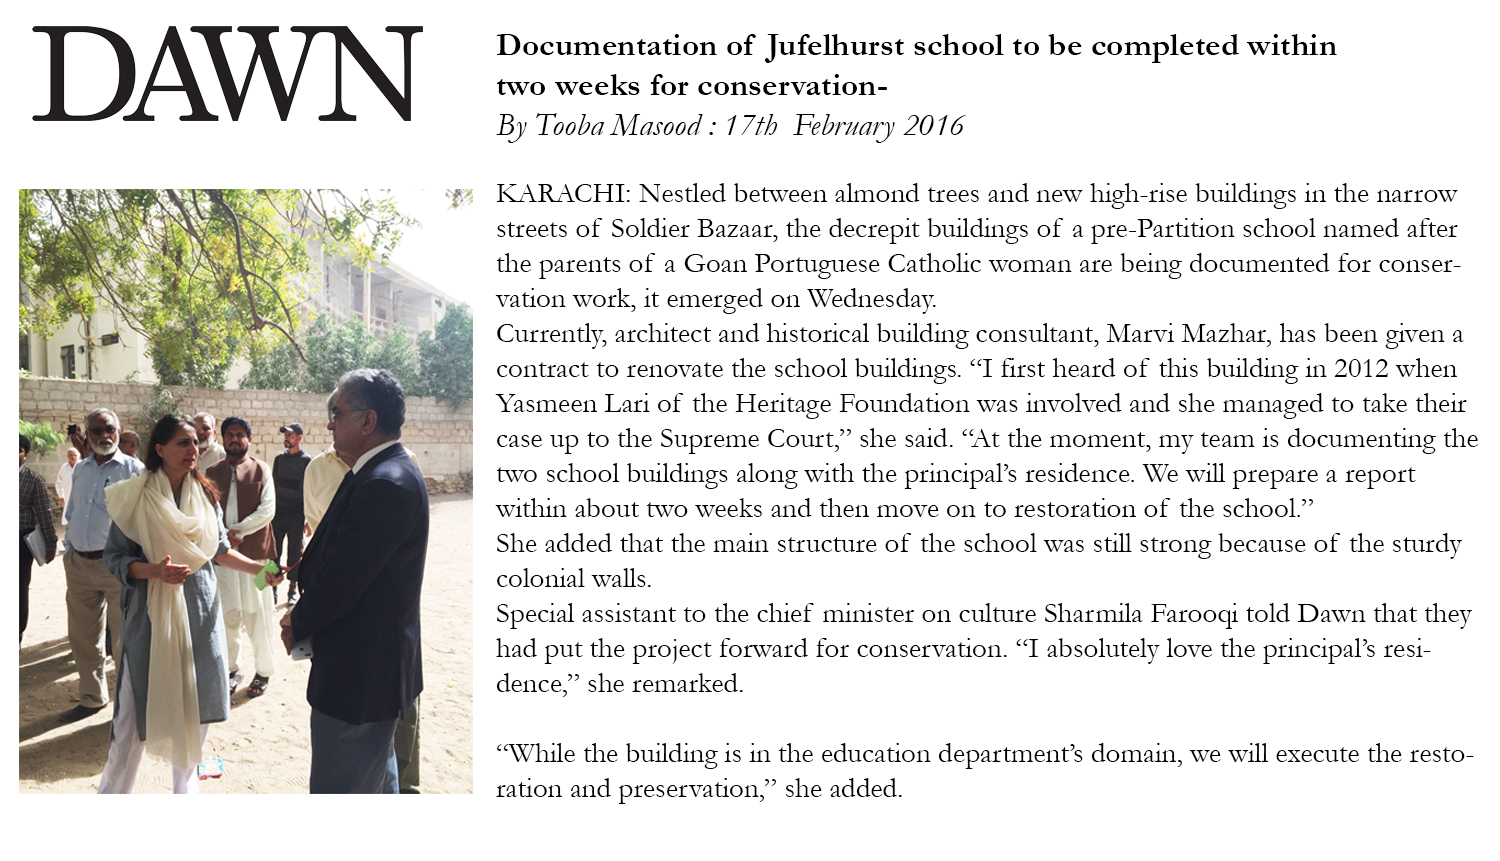 Documentation of Jufelhurst school to be completed within two weeks for conversation by Tooba Masood. Published in Dawn on 17th February 2016